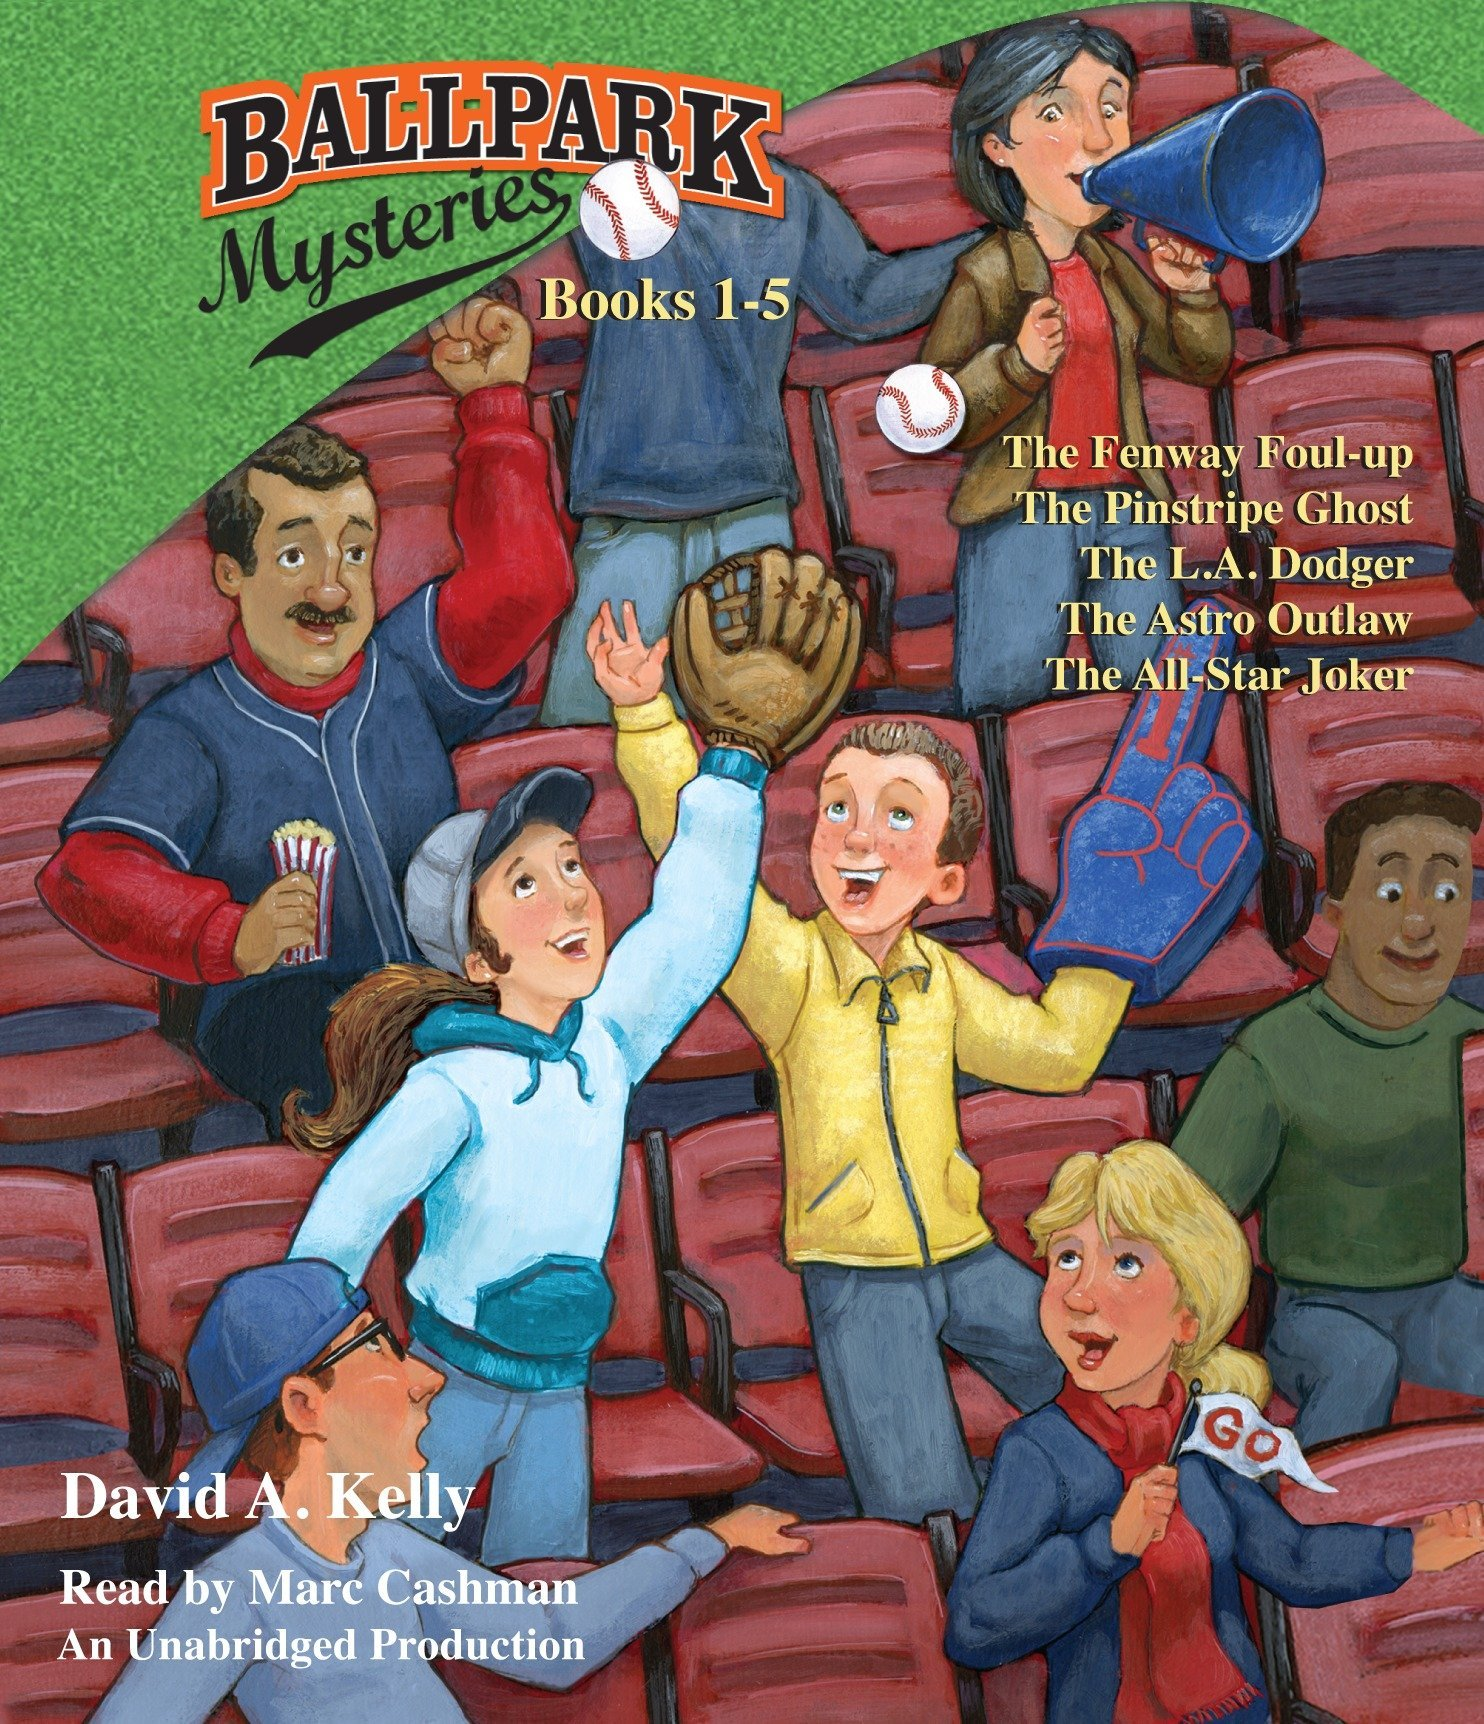 Ballpark Mysteries Collection: Books 1-5: #1 The Fenway Foul-up; #2 The Pinstripe Ghost; #3 The L.A. Dodger; #4 The Astro Outlaw; #5 The All-Star Joker by Brand: Listening Library (Audio)